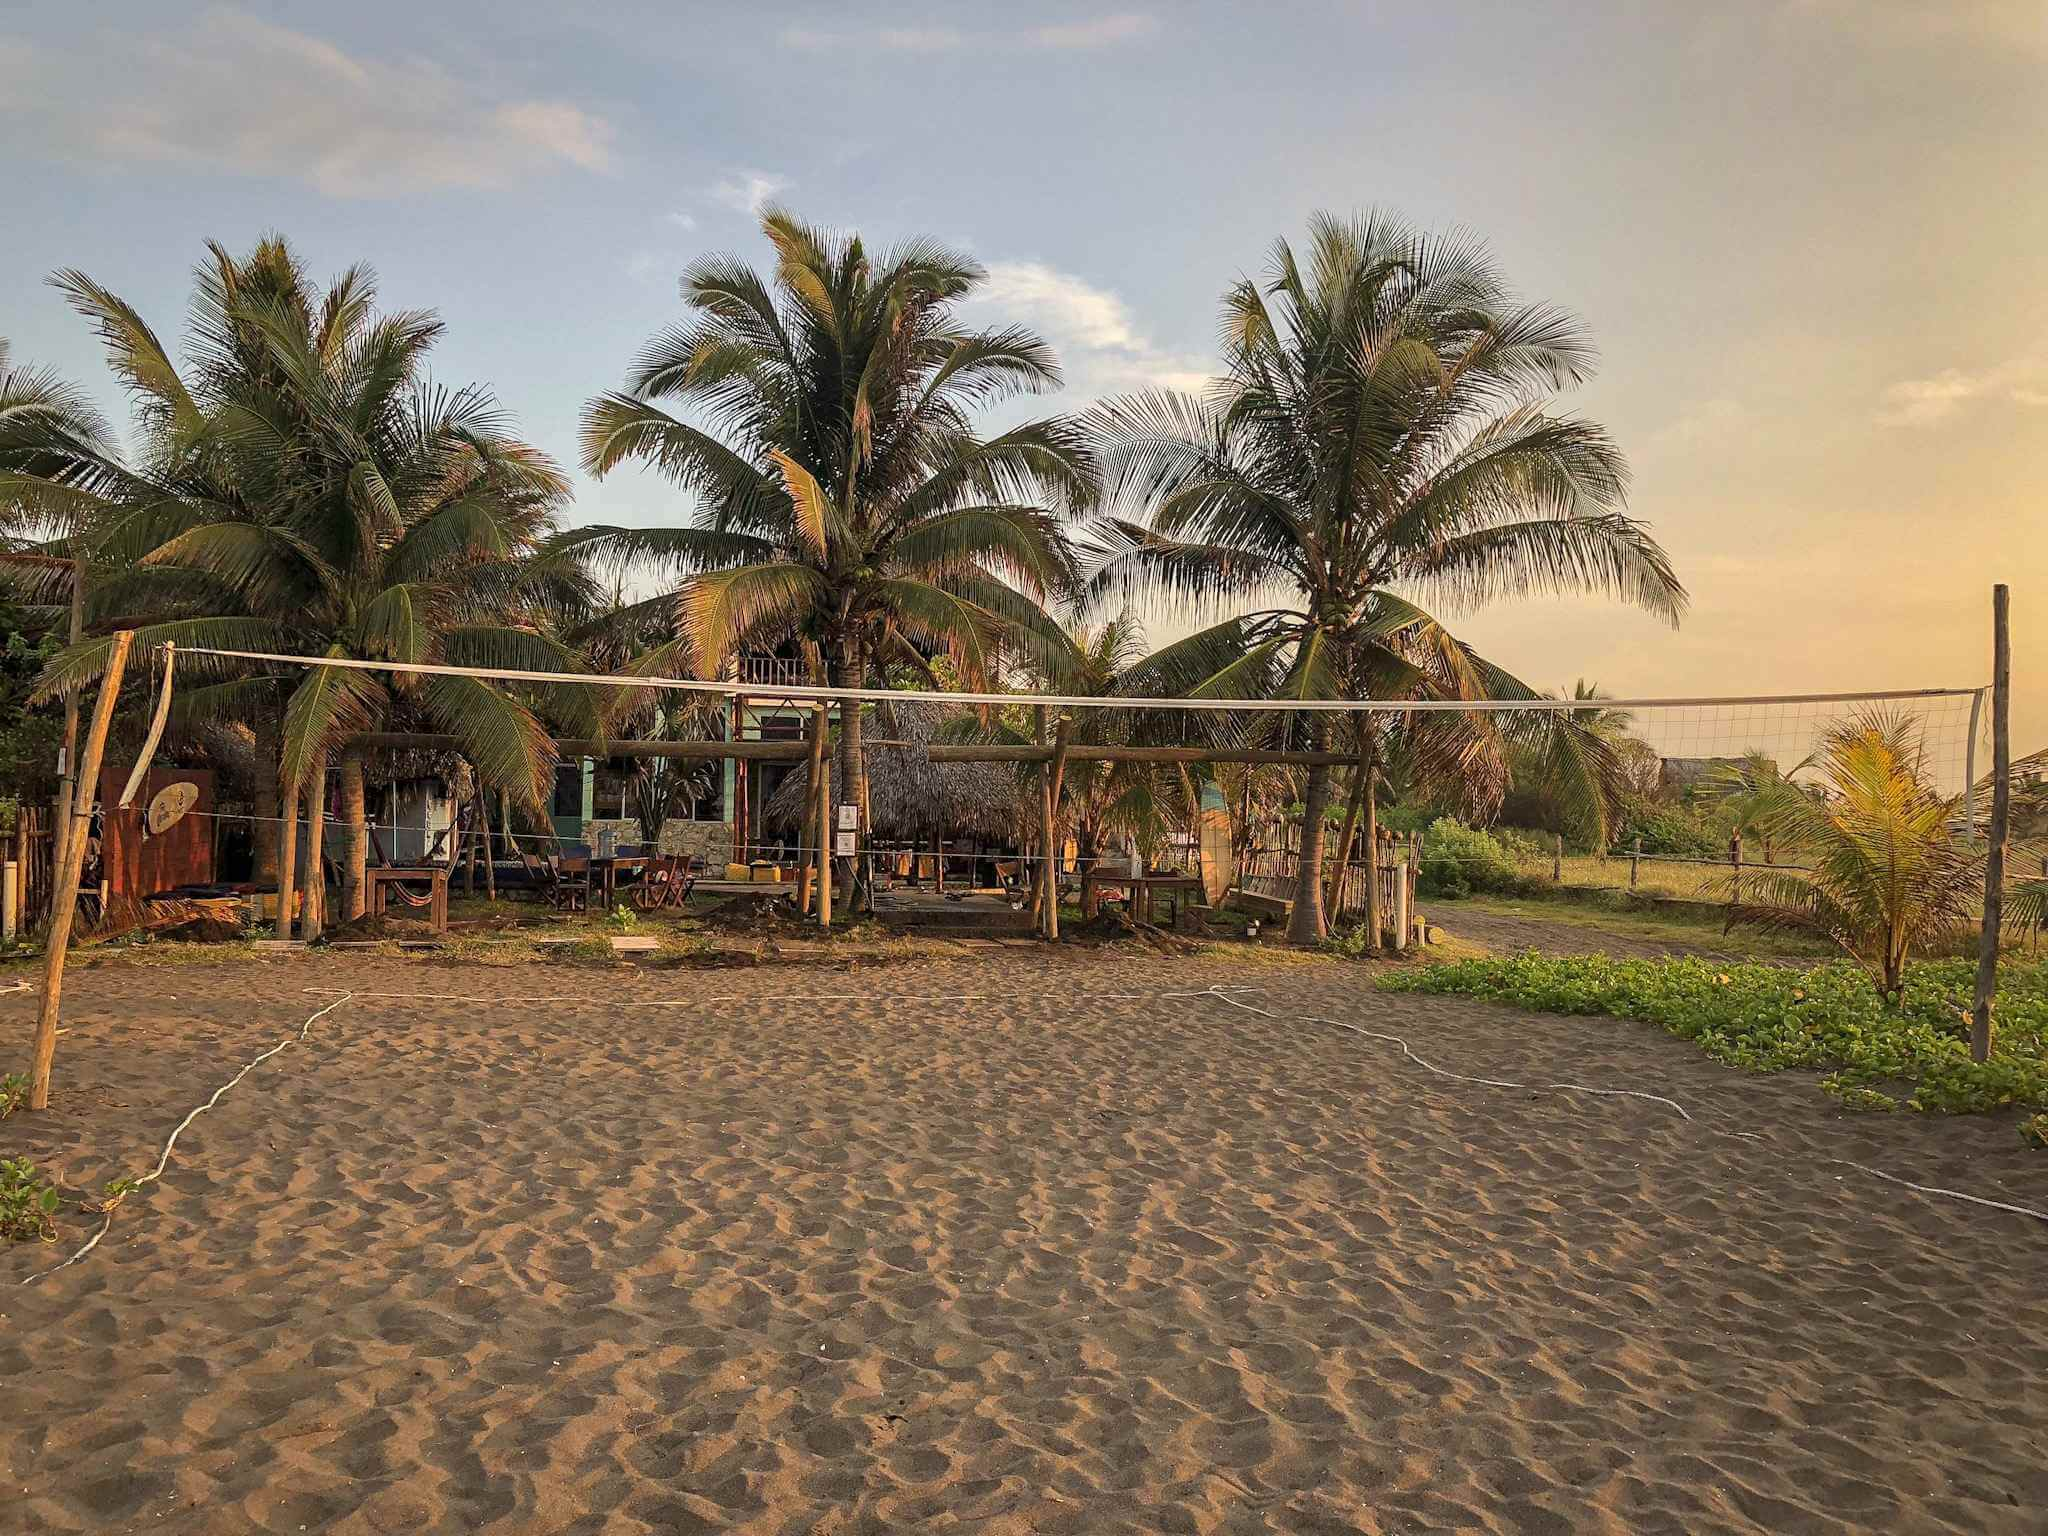 El Paredon - The Driftwood Surfer hostel